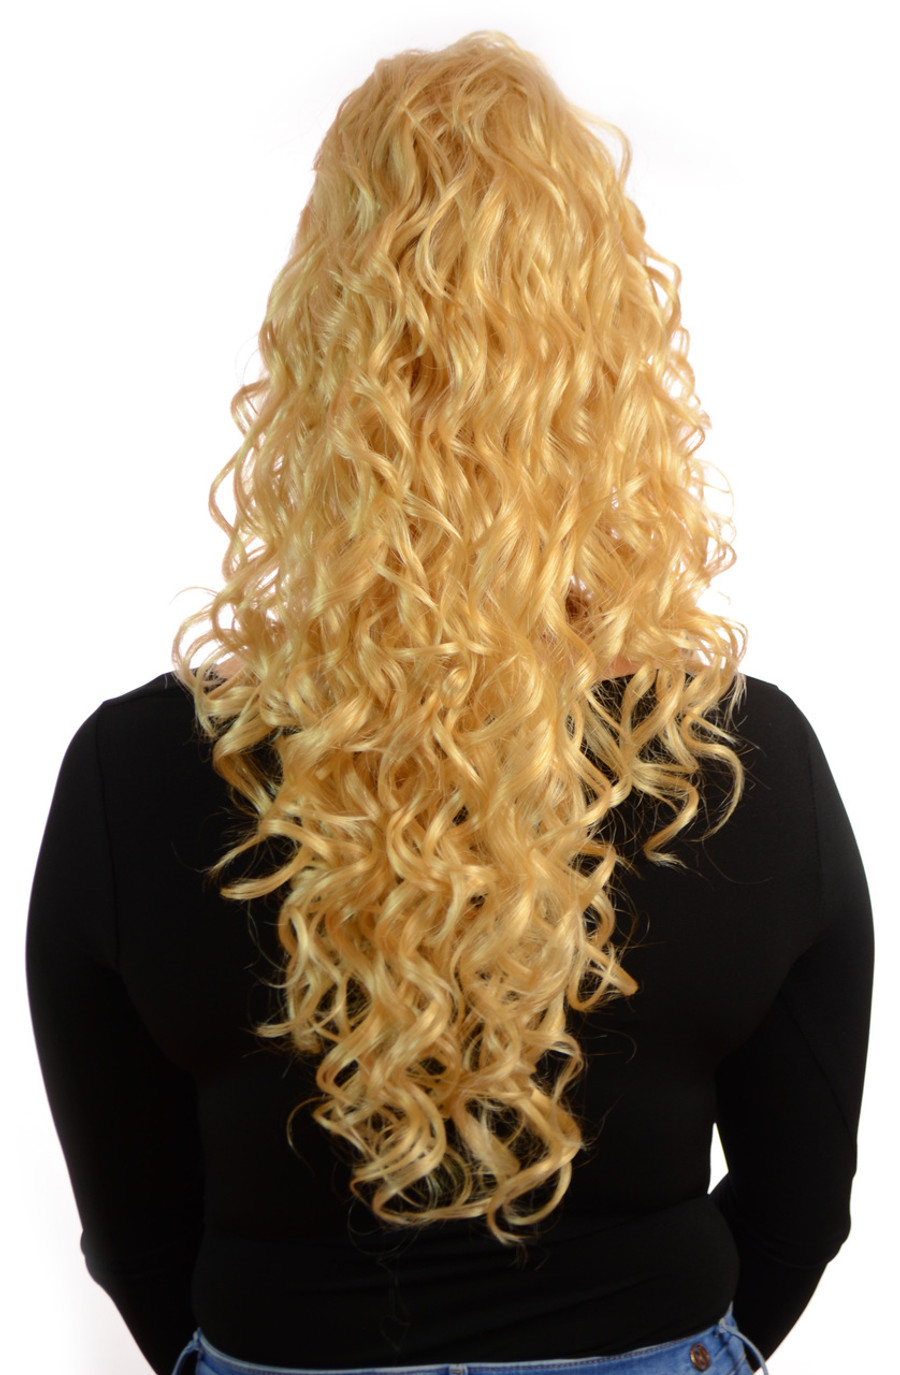 Claw Grip Ringlet Curly Hair Piece Ponytail Clip: Candy Blonde